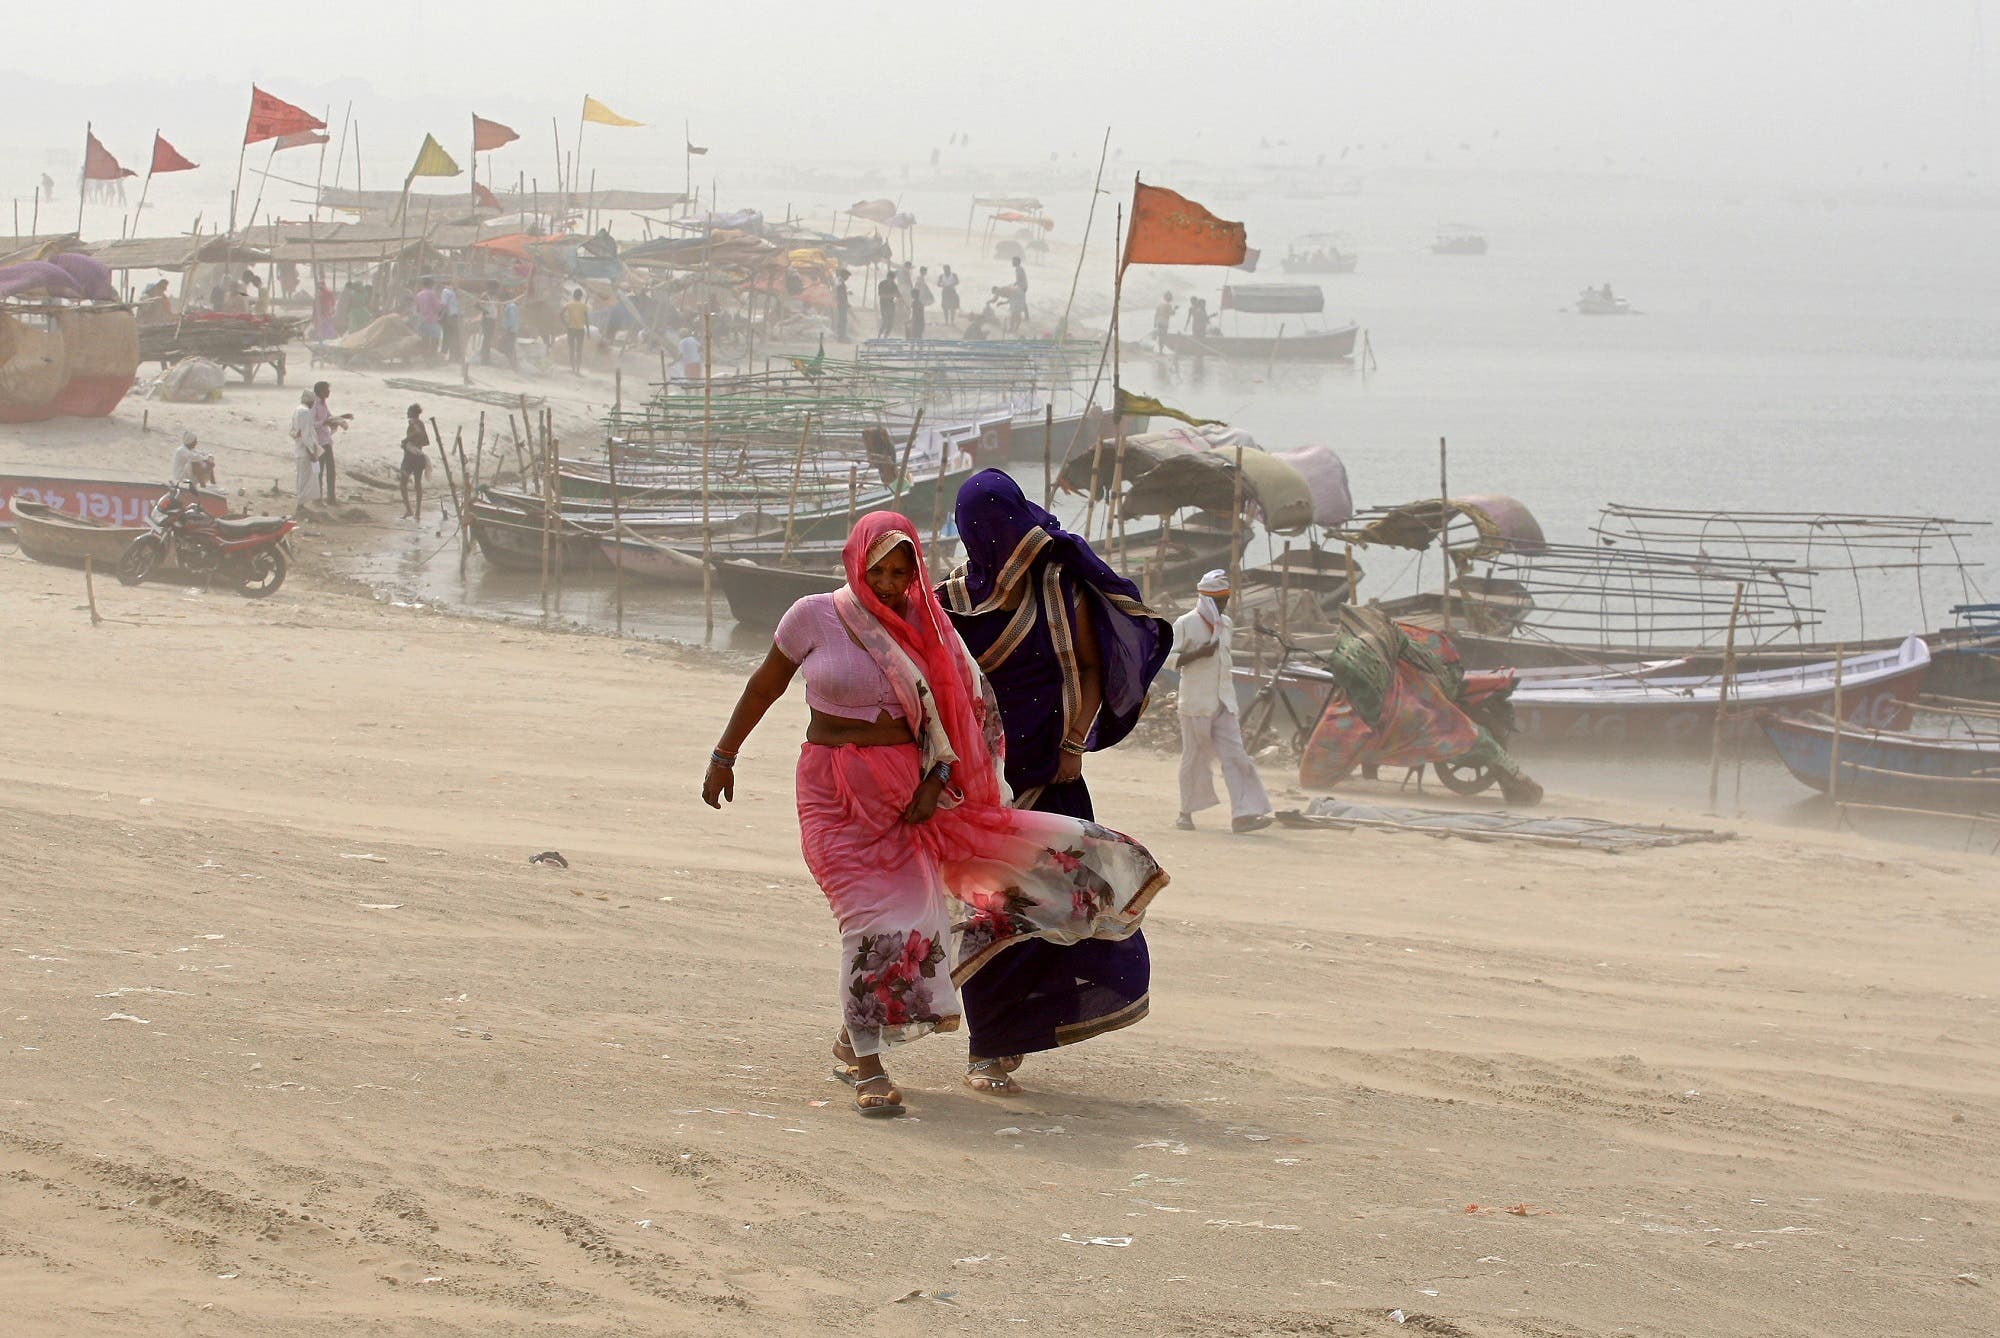 Women cover themselves as they walk on the banks of the river Ganges during a dust storm in Allahabad on April 7, 2018. (Reuters)